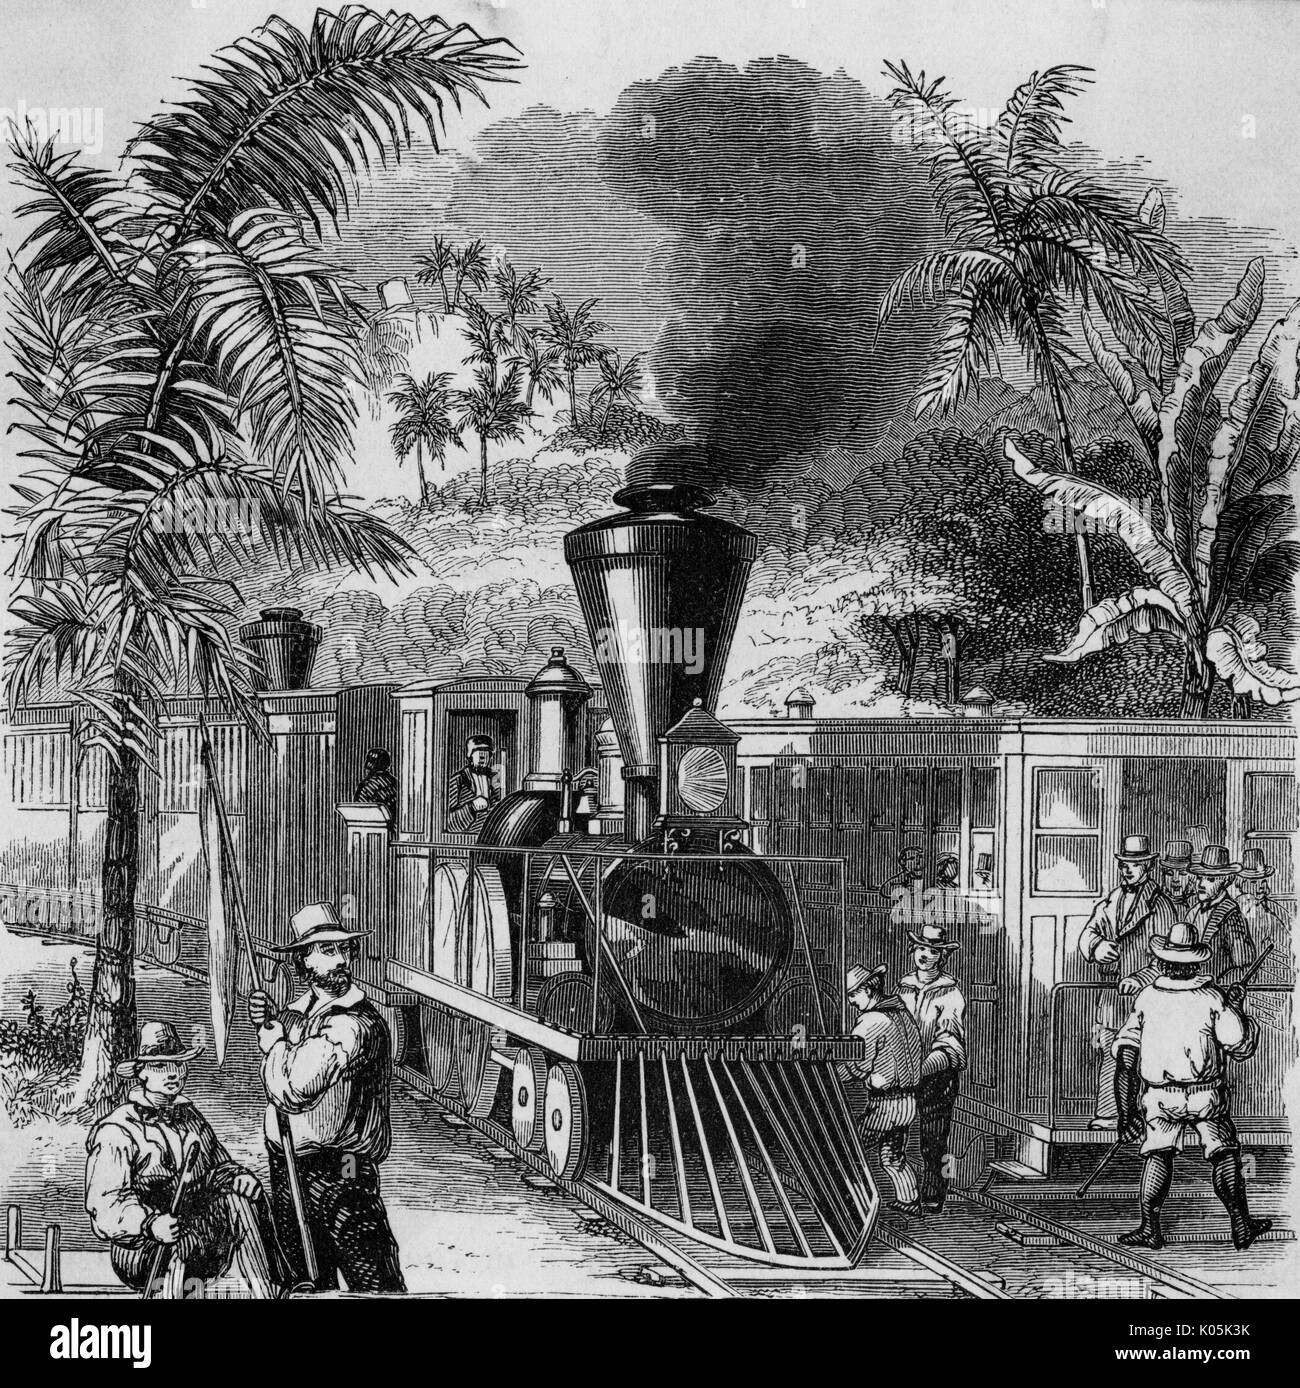 Passengers meet a train on a  jungle track, somewhere in  South America.        Date: 1886 - Stock Image